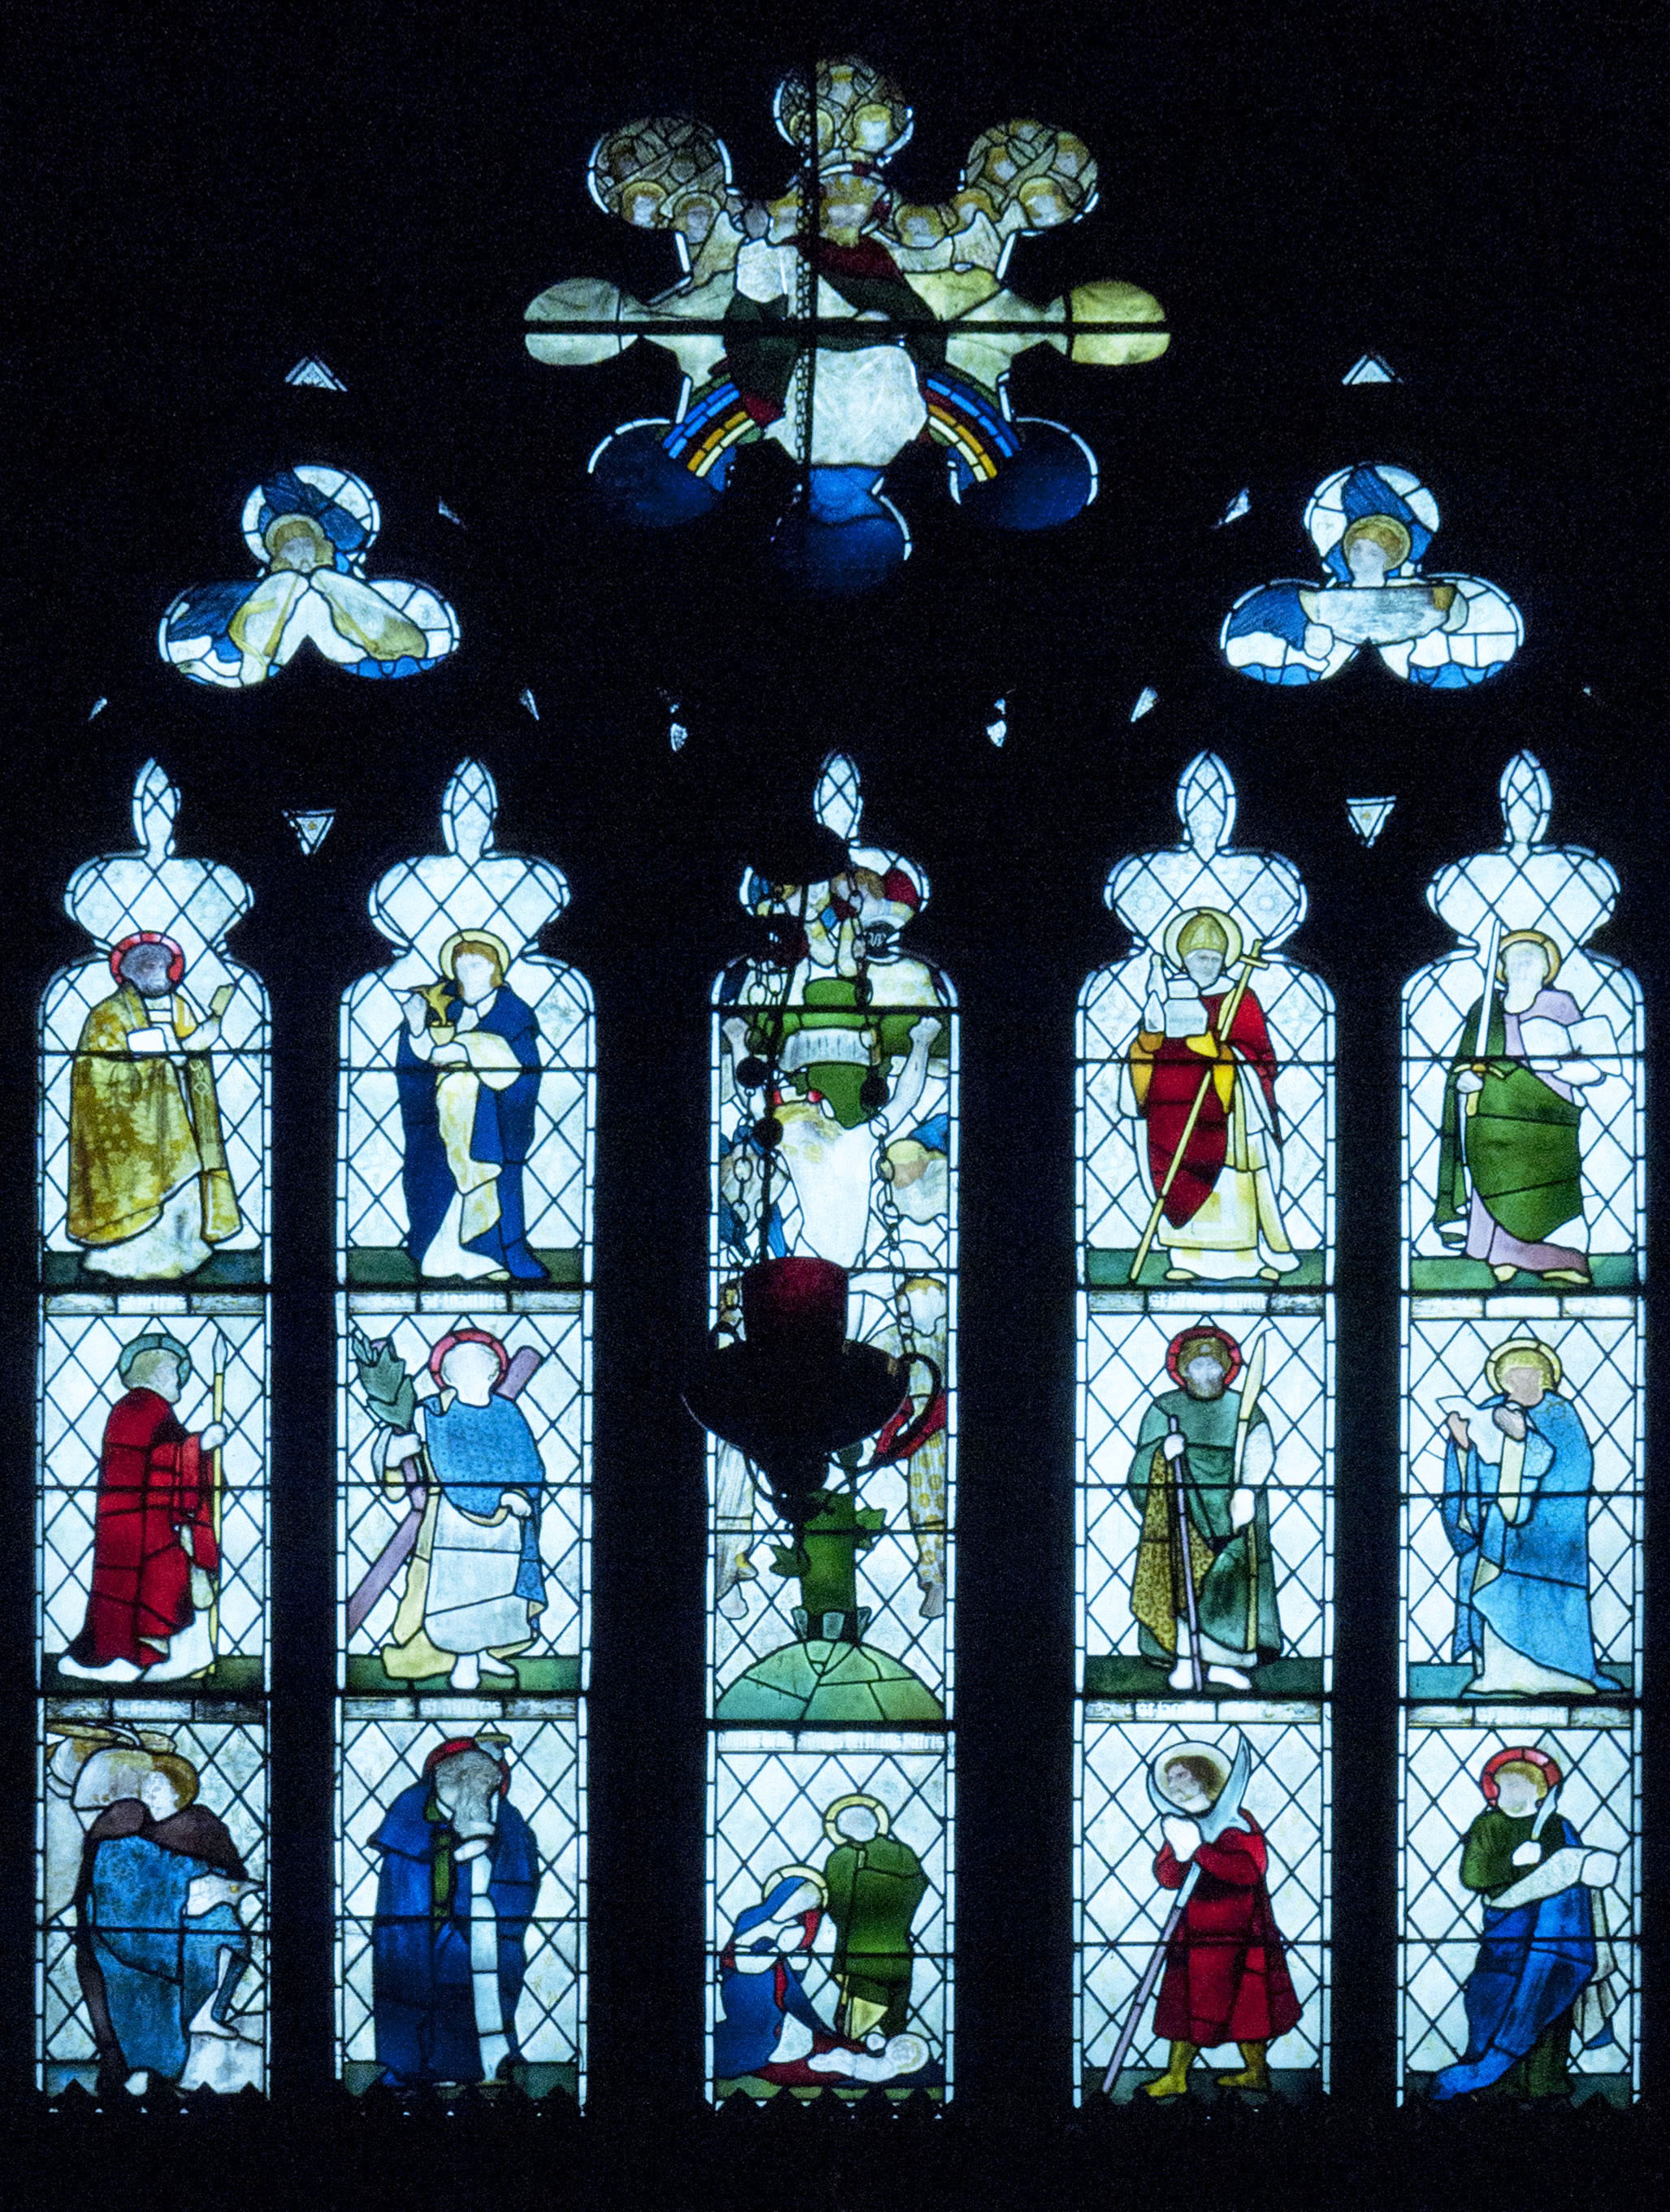 East Window by Morris, Marshall, Faulkner & Co. 1870, St. Martin's on Brabyn's Brow, Low Marple